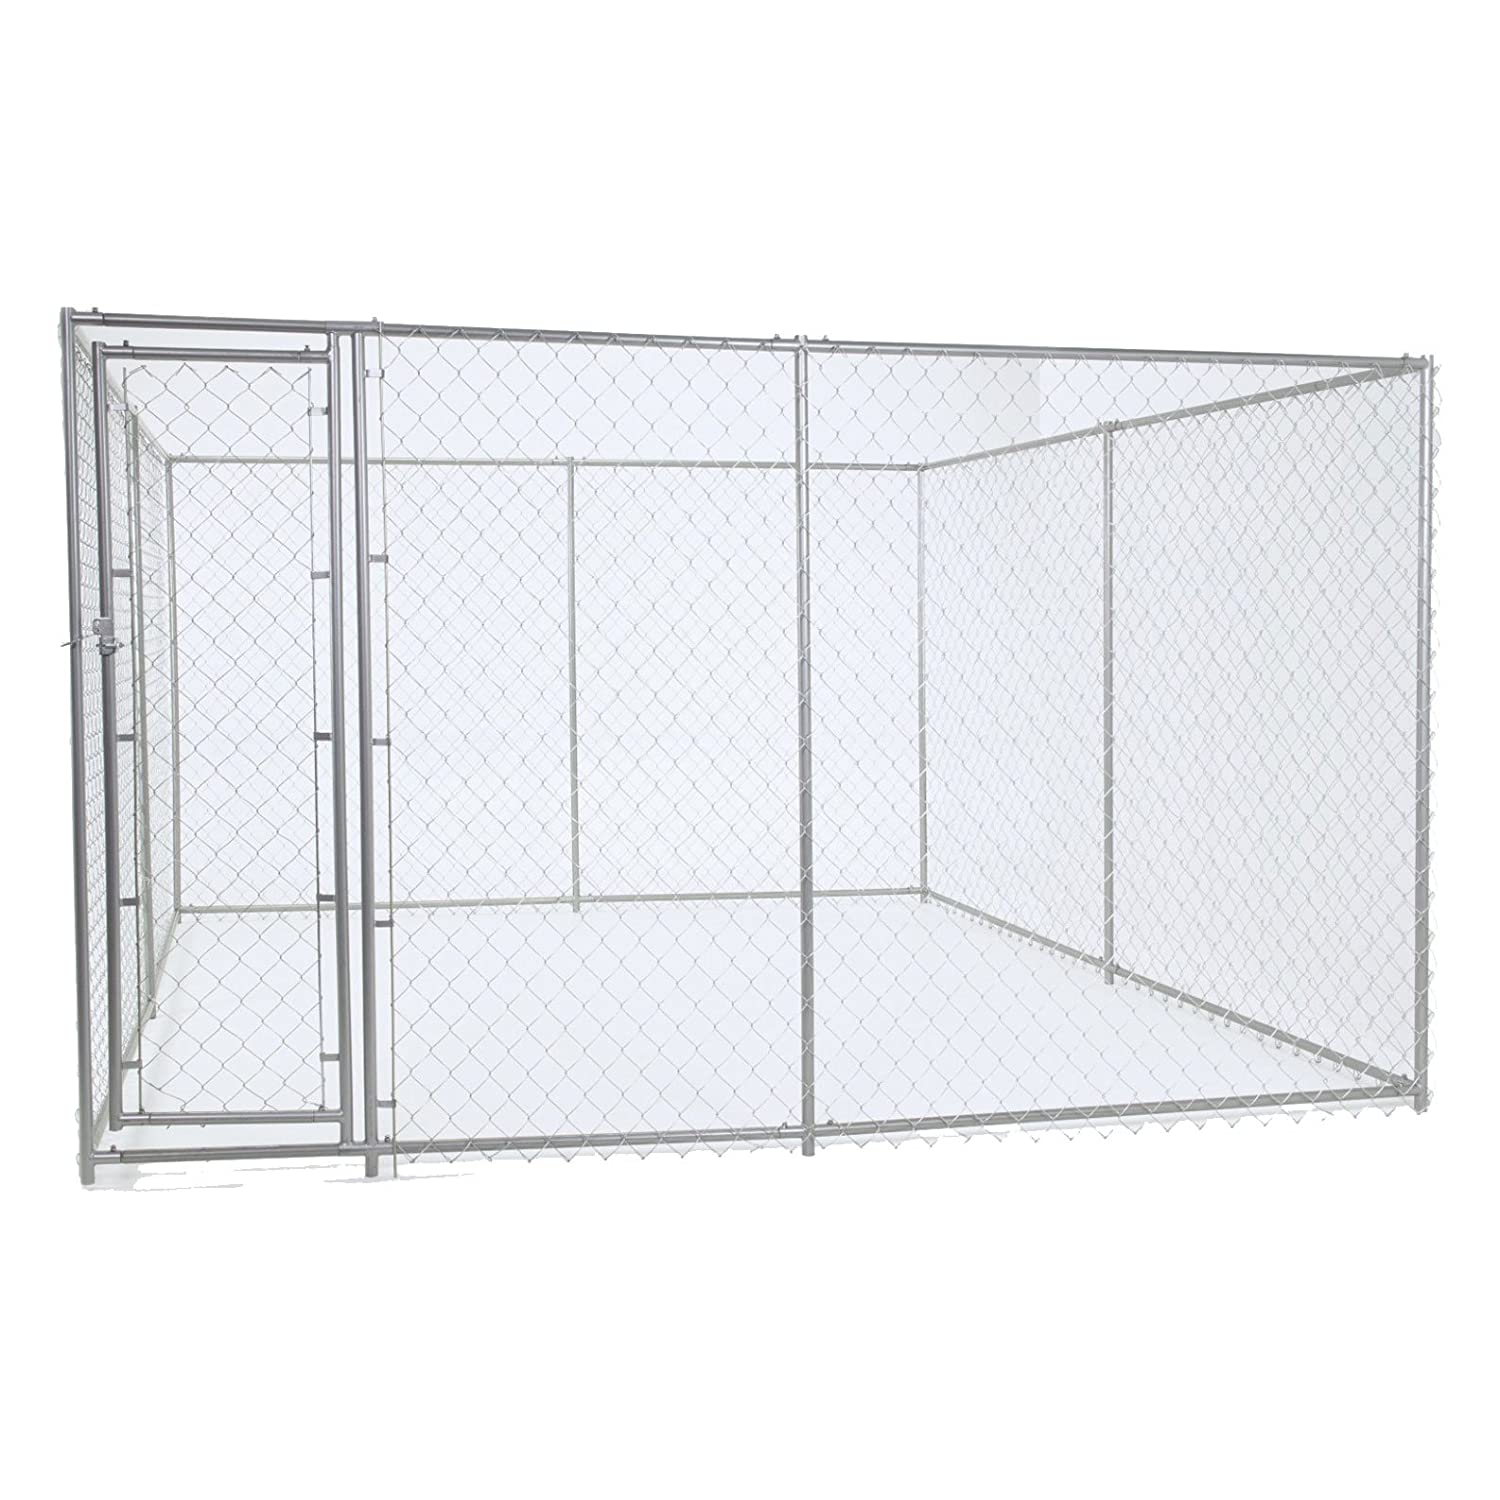 6 x 5 x 15' 10 x 10\ Chain Link Dog Kennel ‰ÛÒ Lucky Dog Outdoor Heavy Duty Pet Kennel ‰ÛÒ This Pet Cage System is Perfect For Containing Larger Dogs and Small Animals. Galvanized chain link doesn't kink or tangle.